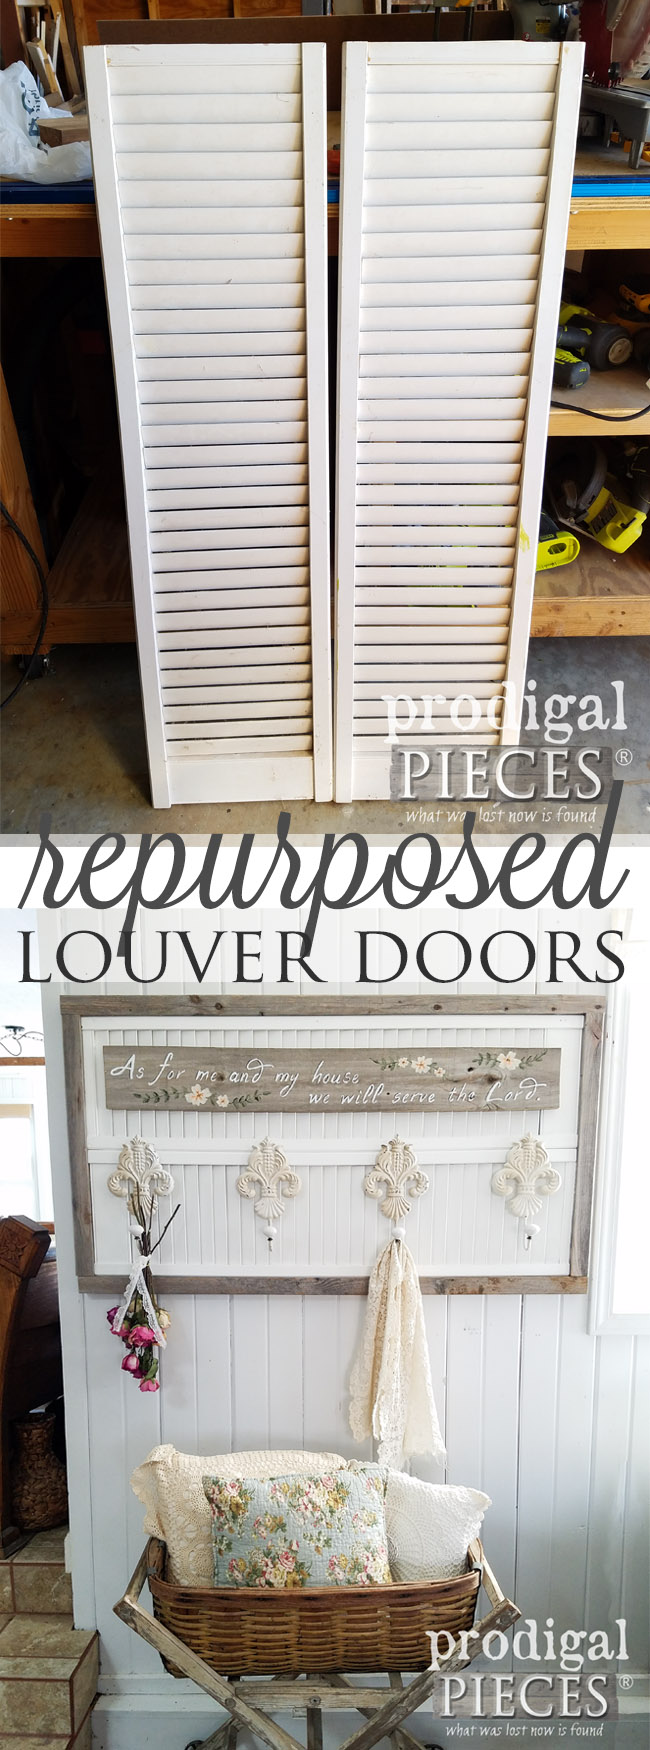 Who would have thought repurposed louver doors could look so good? Larissa of Prodigal Pieces made a functional and stylish coat or towel rack perfect for your home. Come get the DIY details at Prodigal Pieces | prodigalpieces.com